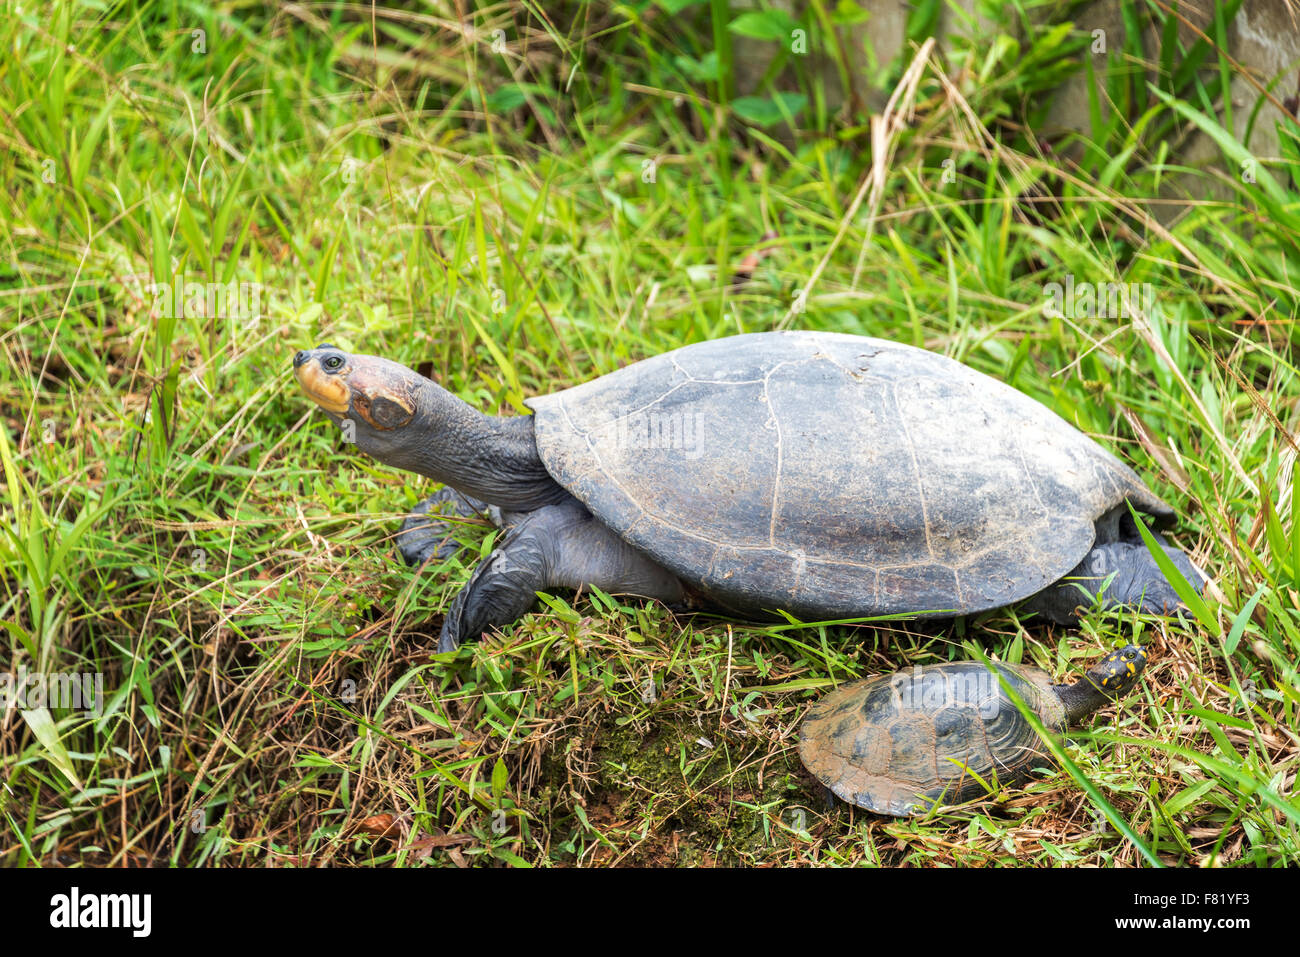 Yellow spotted Amazon river turtle in Iquitos, Peru - Stock Image